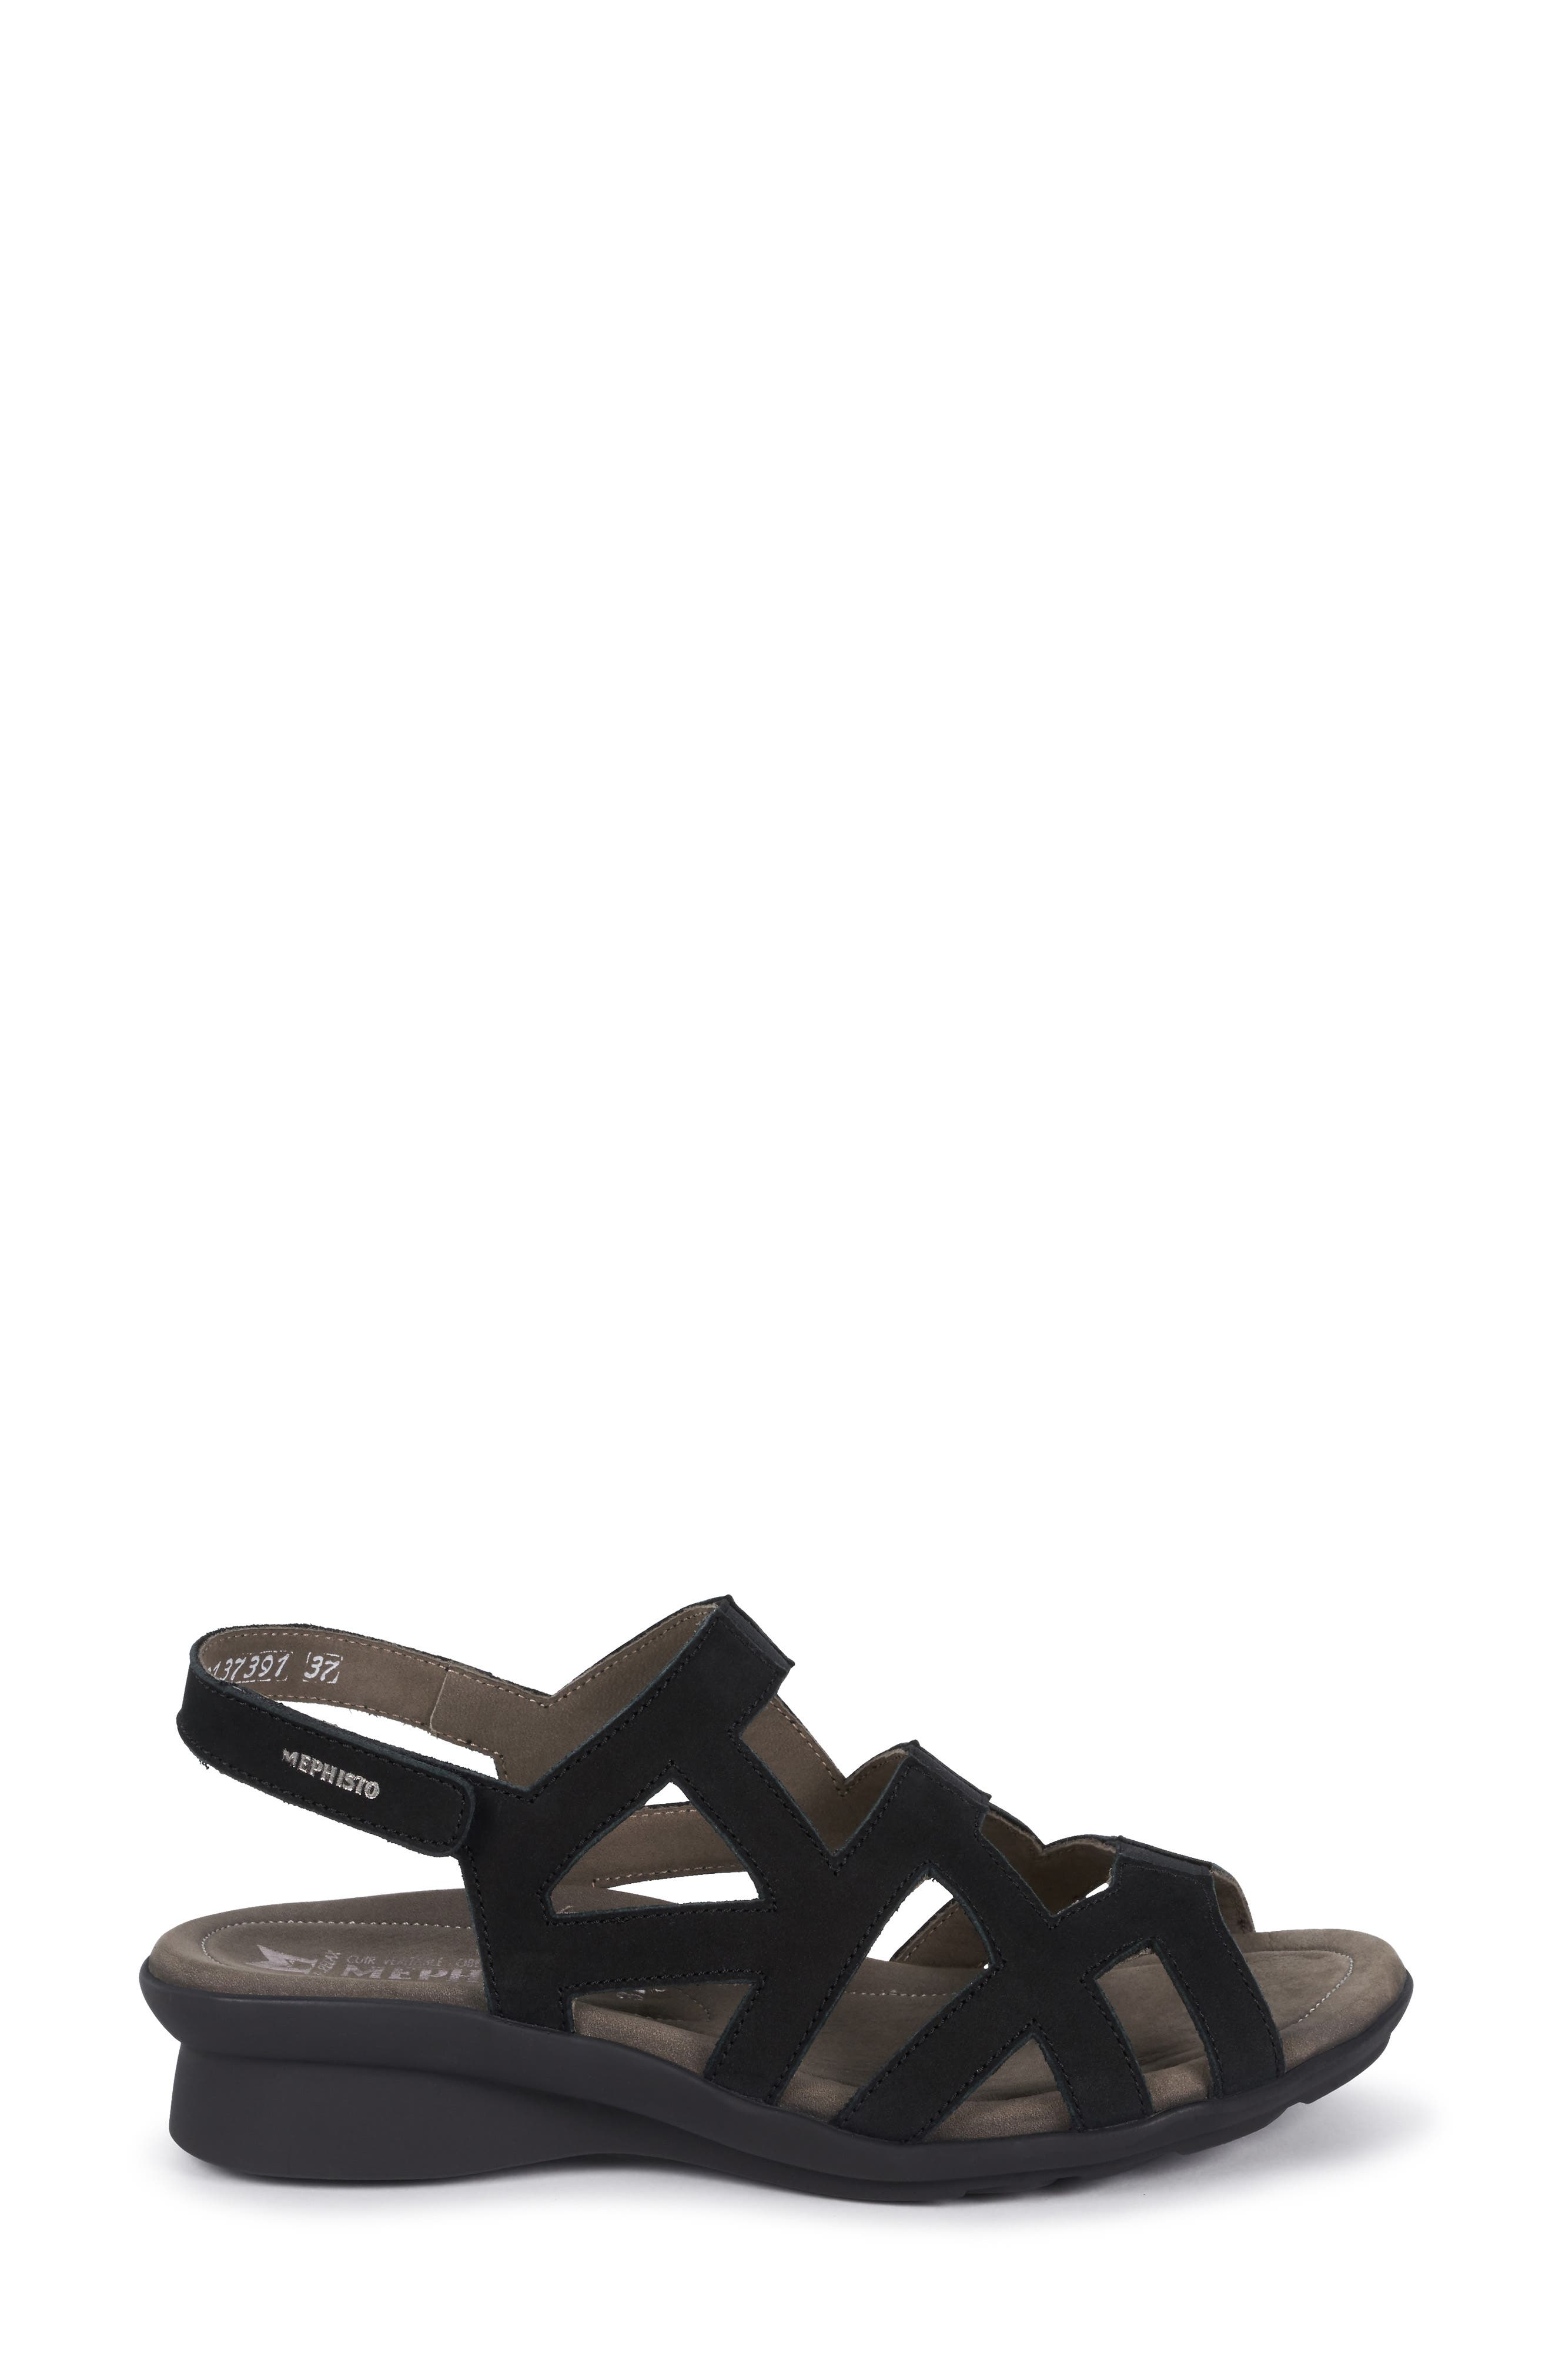 MEPHISTO, Pamela Sandal, Alternate thumbnail 3, color, BLACK NUBUCK